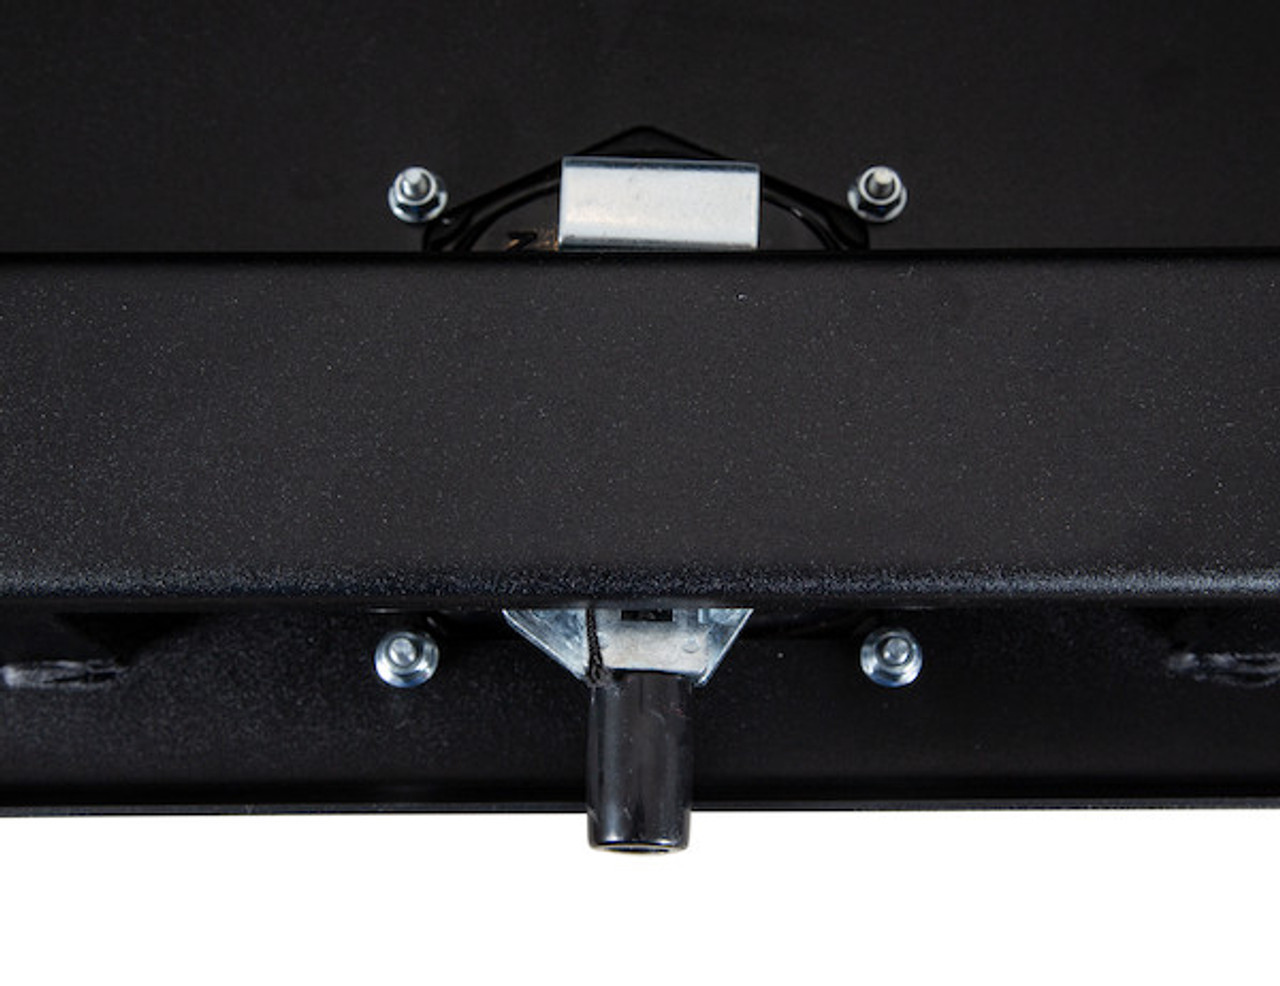 """1732503 BUYERS PRODUCTS TEXTURED MATTE BLACK STEEL UNDERBODY TRUCK TOOLBOX WITH 3-POINT LATCH 18""""Hx18""""Dx30""""W Picture # 6"""